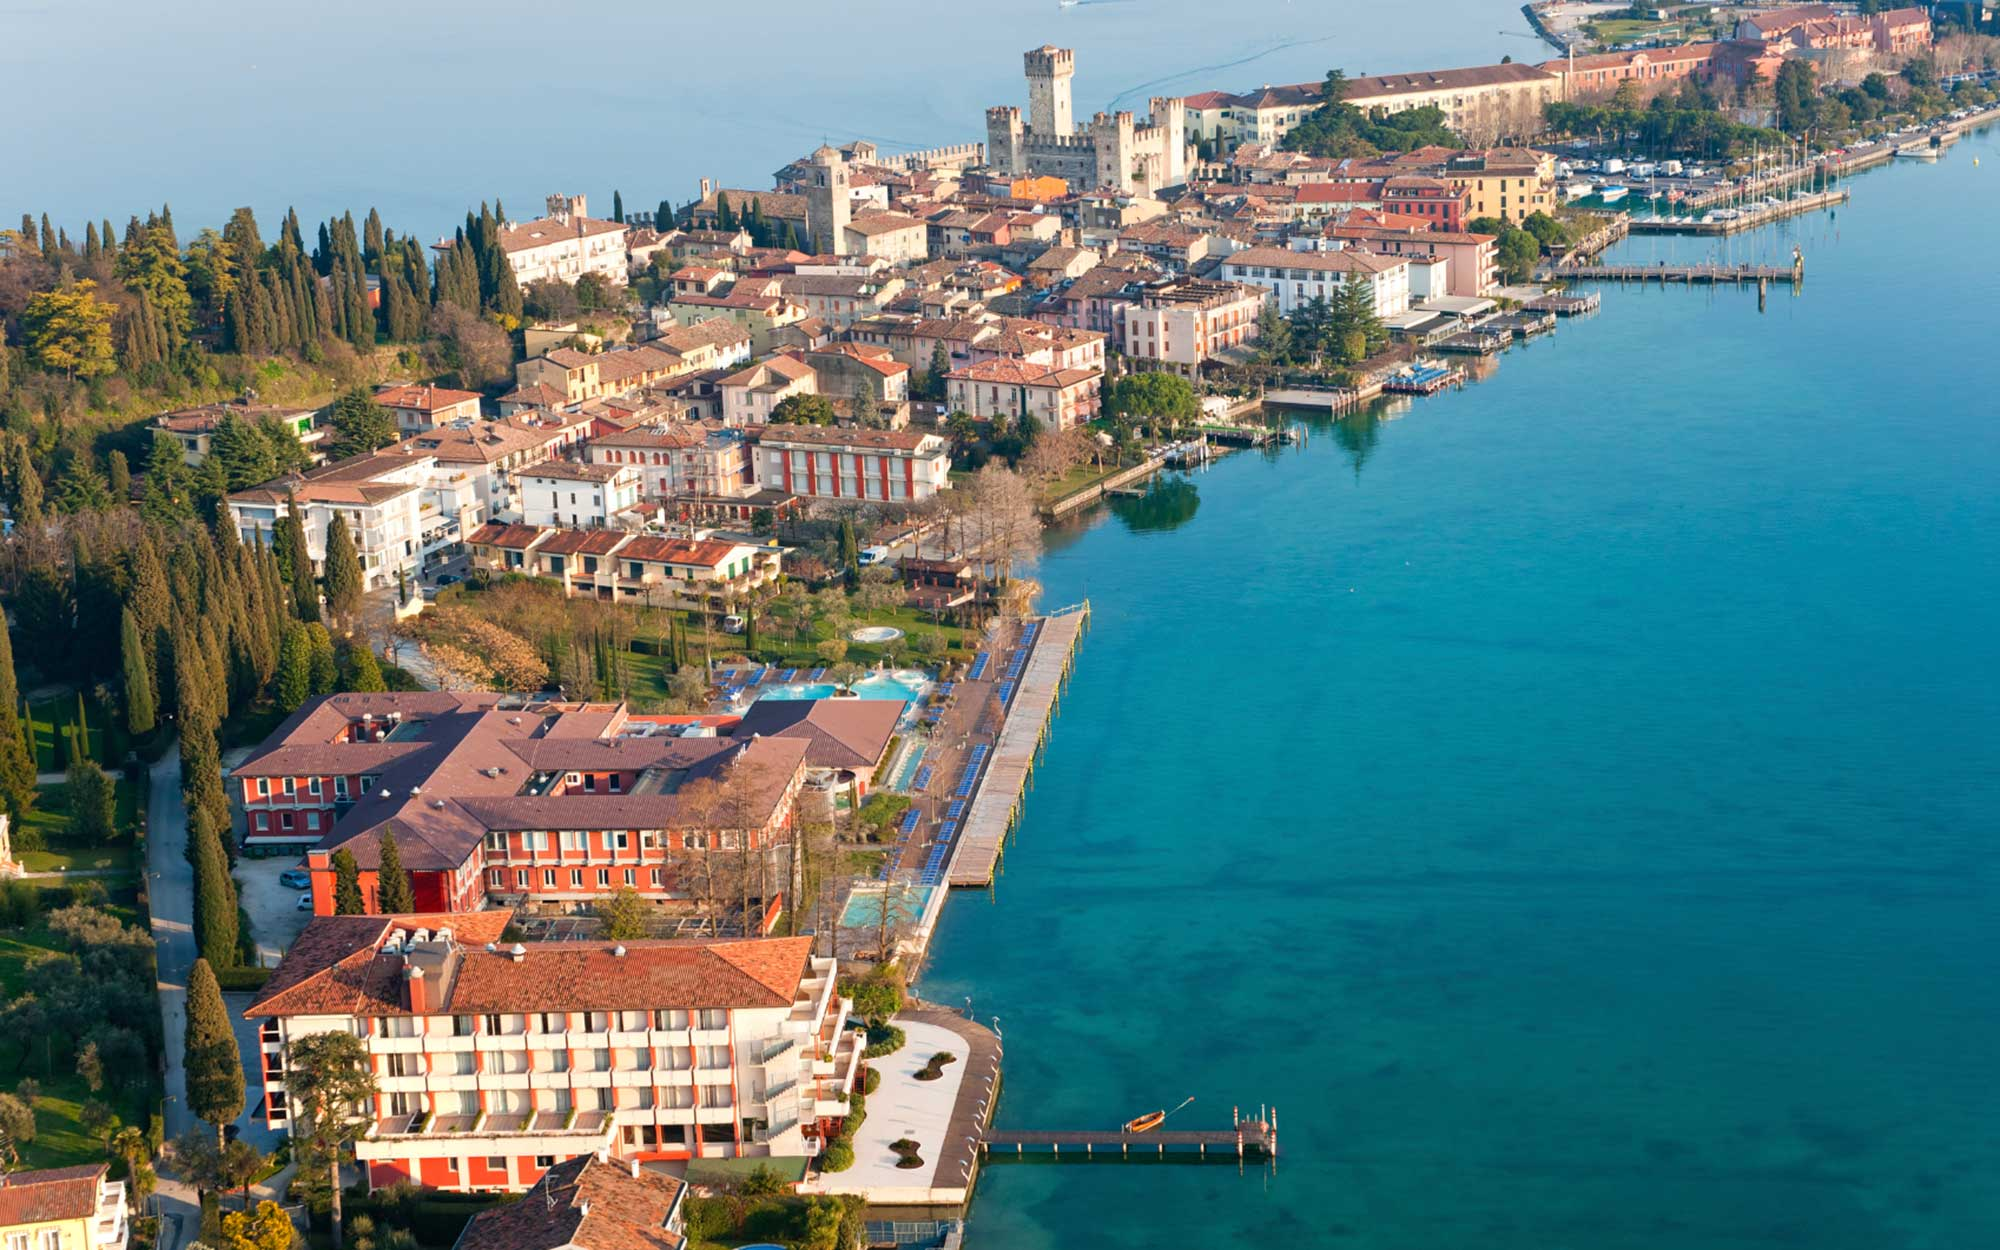 Best Romantic Summer Getaways: Lake Garda, Italy